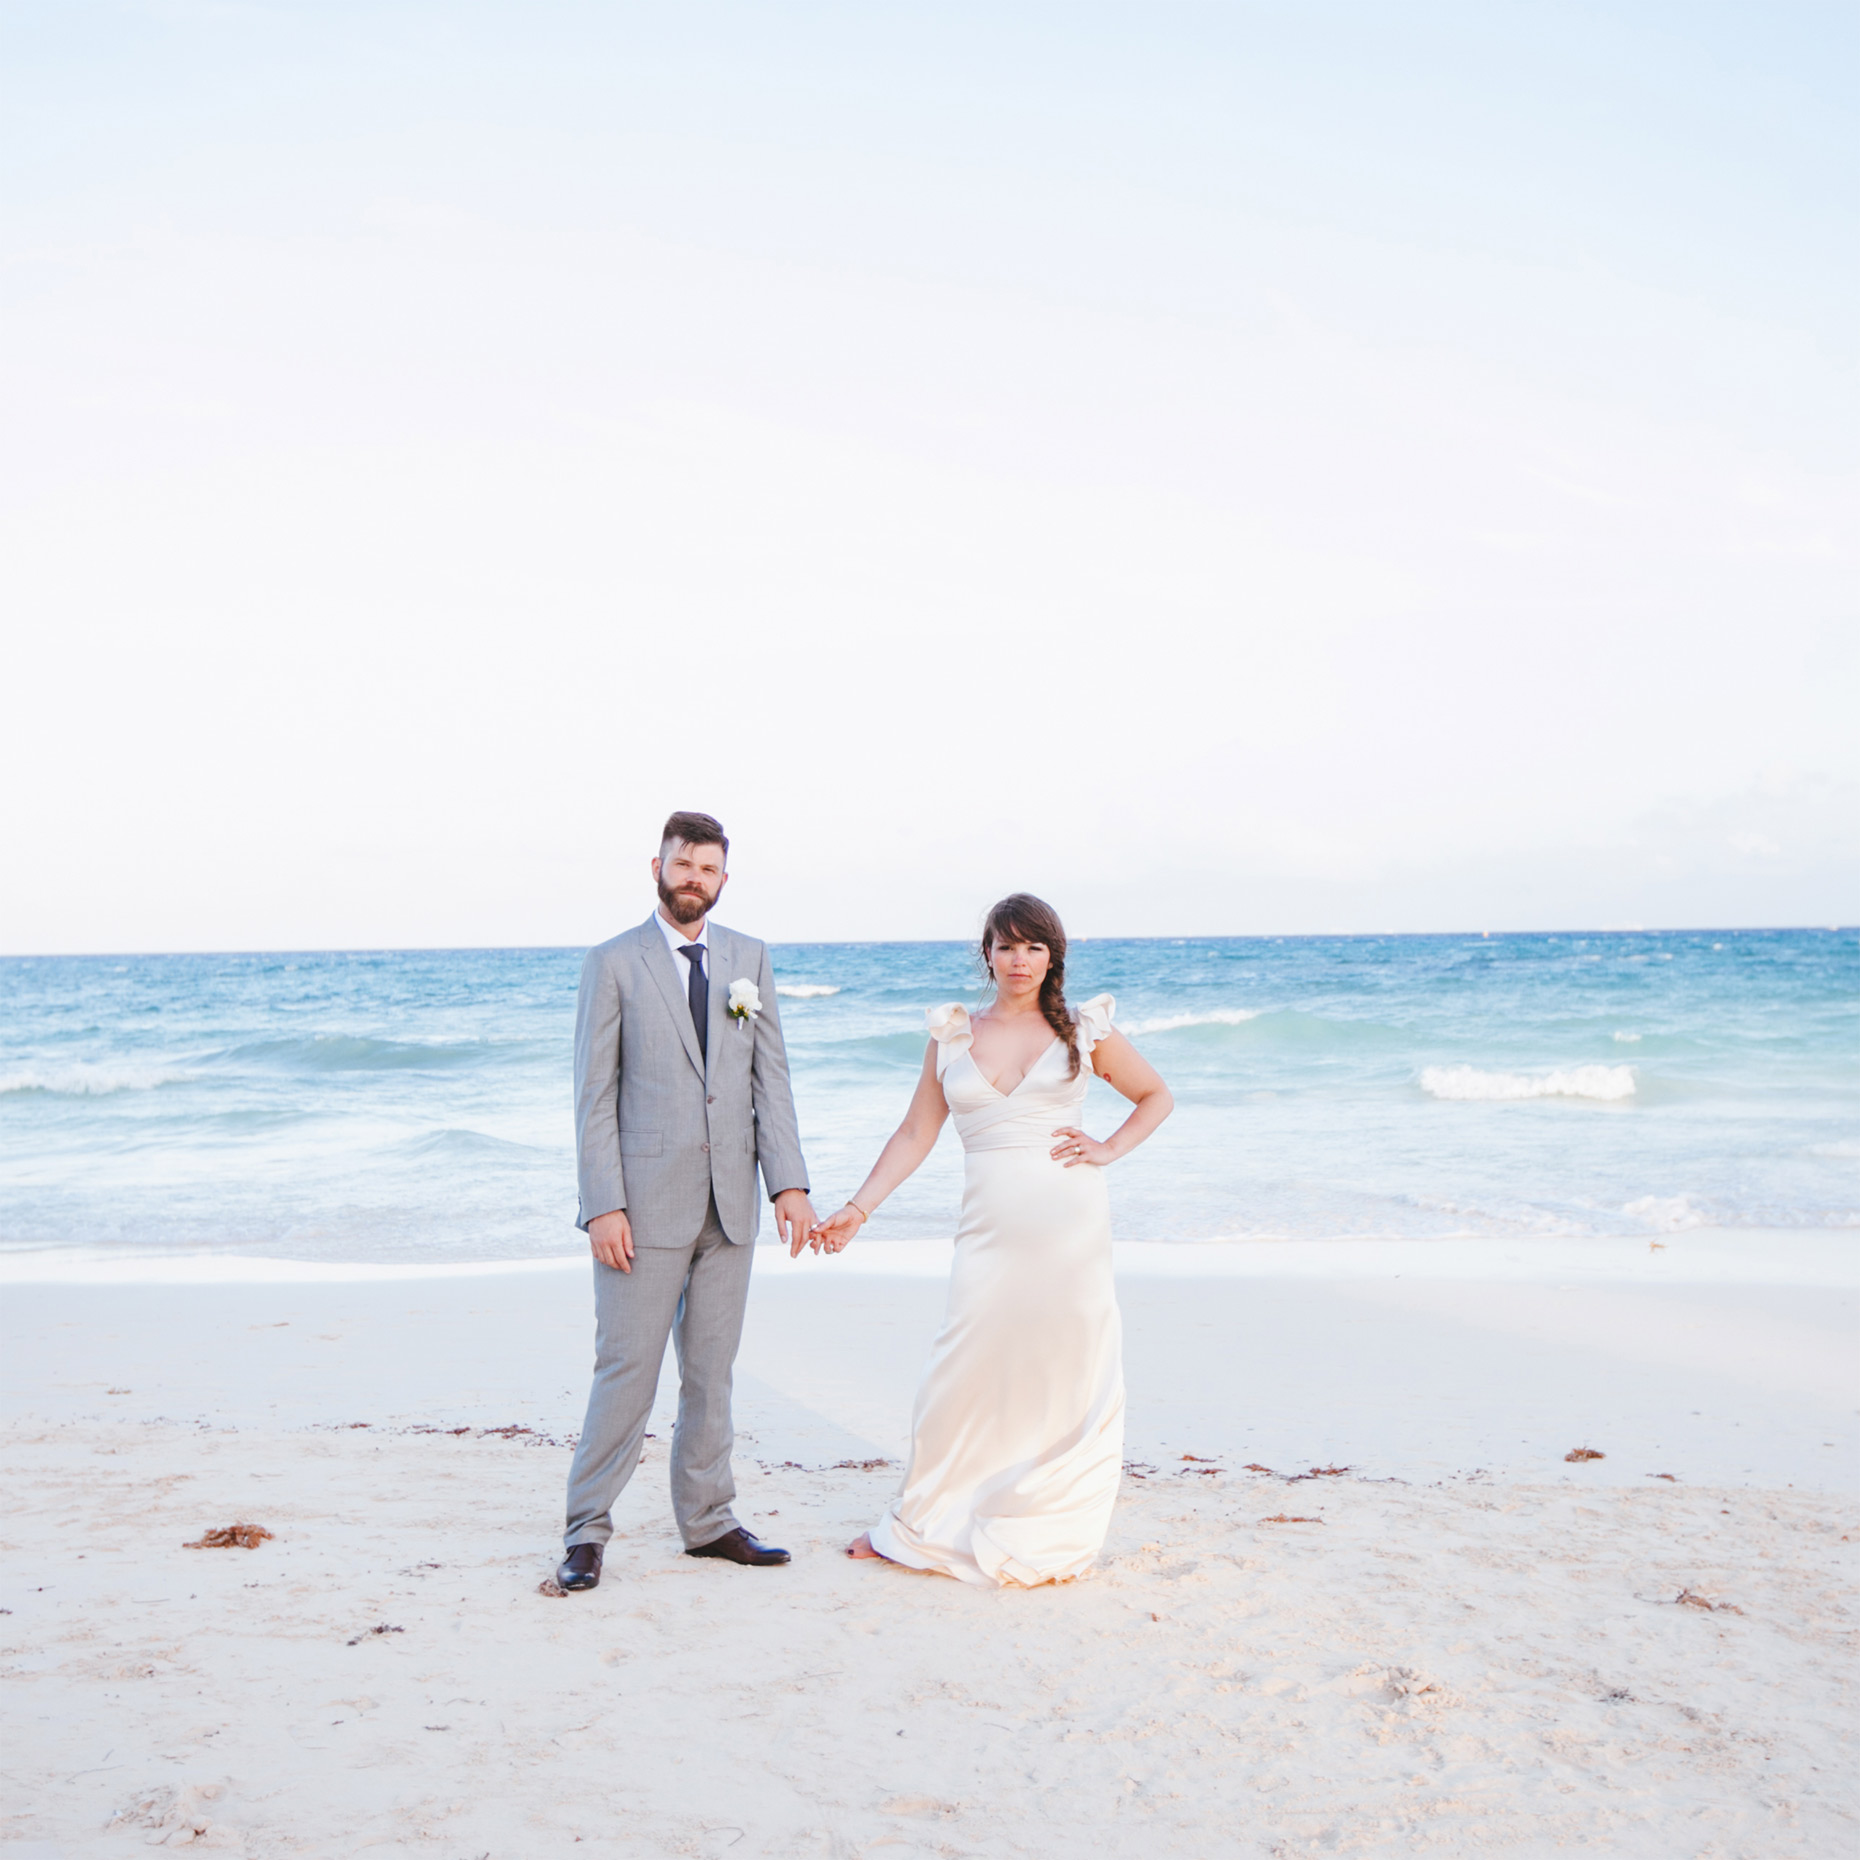 destination_wedding_photographer058